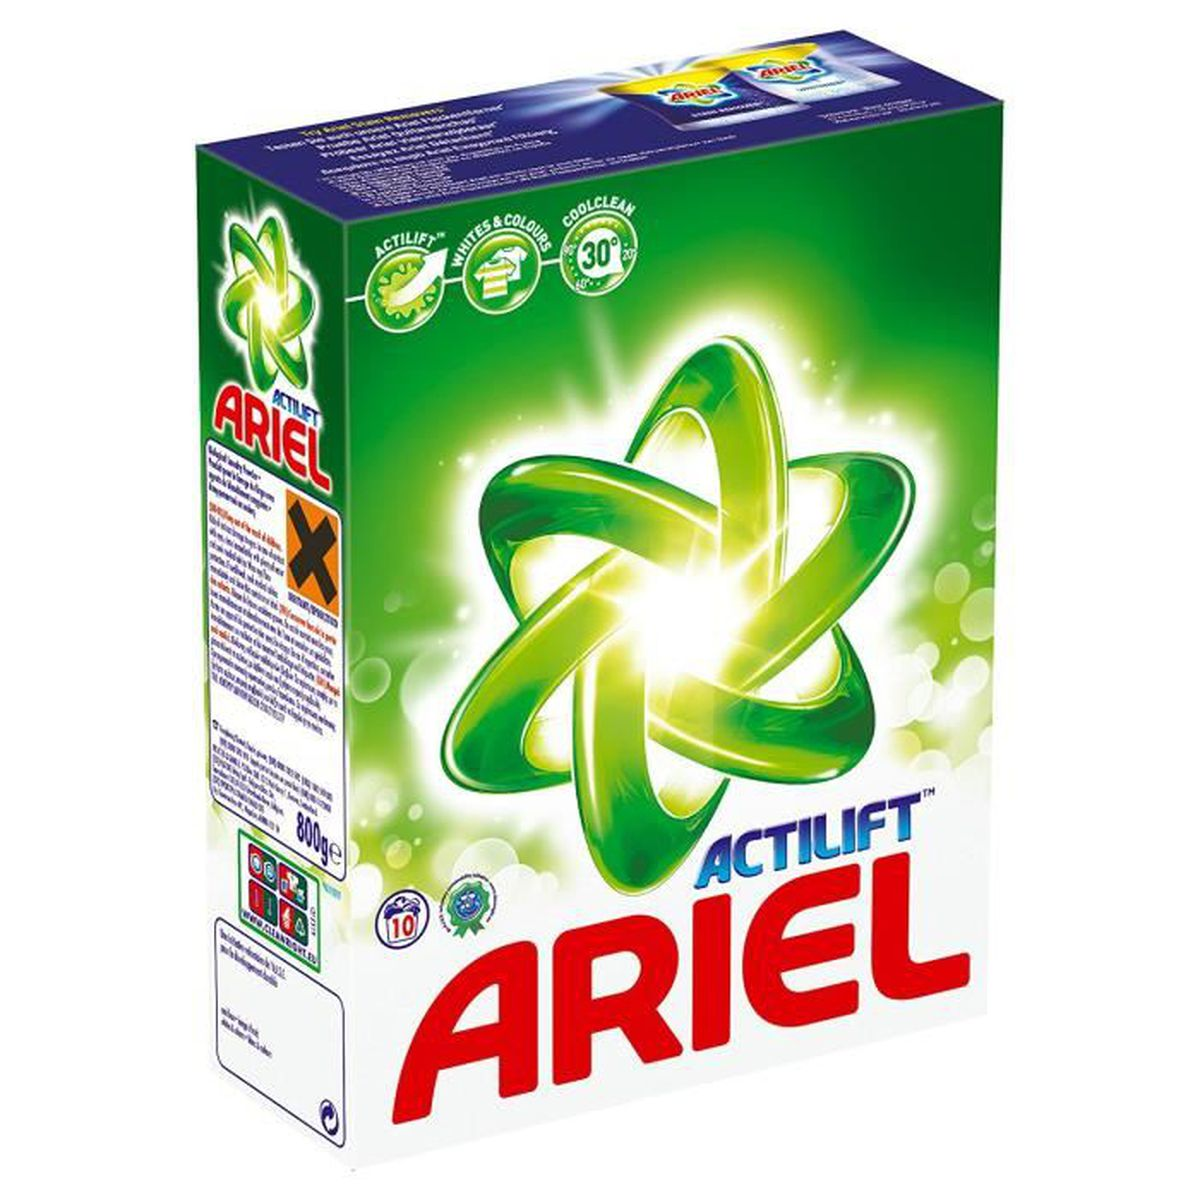 ariel lessive en poudre r gulier 10 doses 650 g lot de 2 achat vente lessive ariel. Black Bedroom Furniture Sets. Home Design Ideas